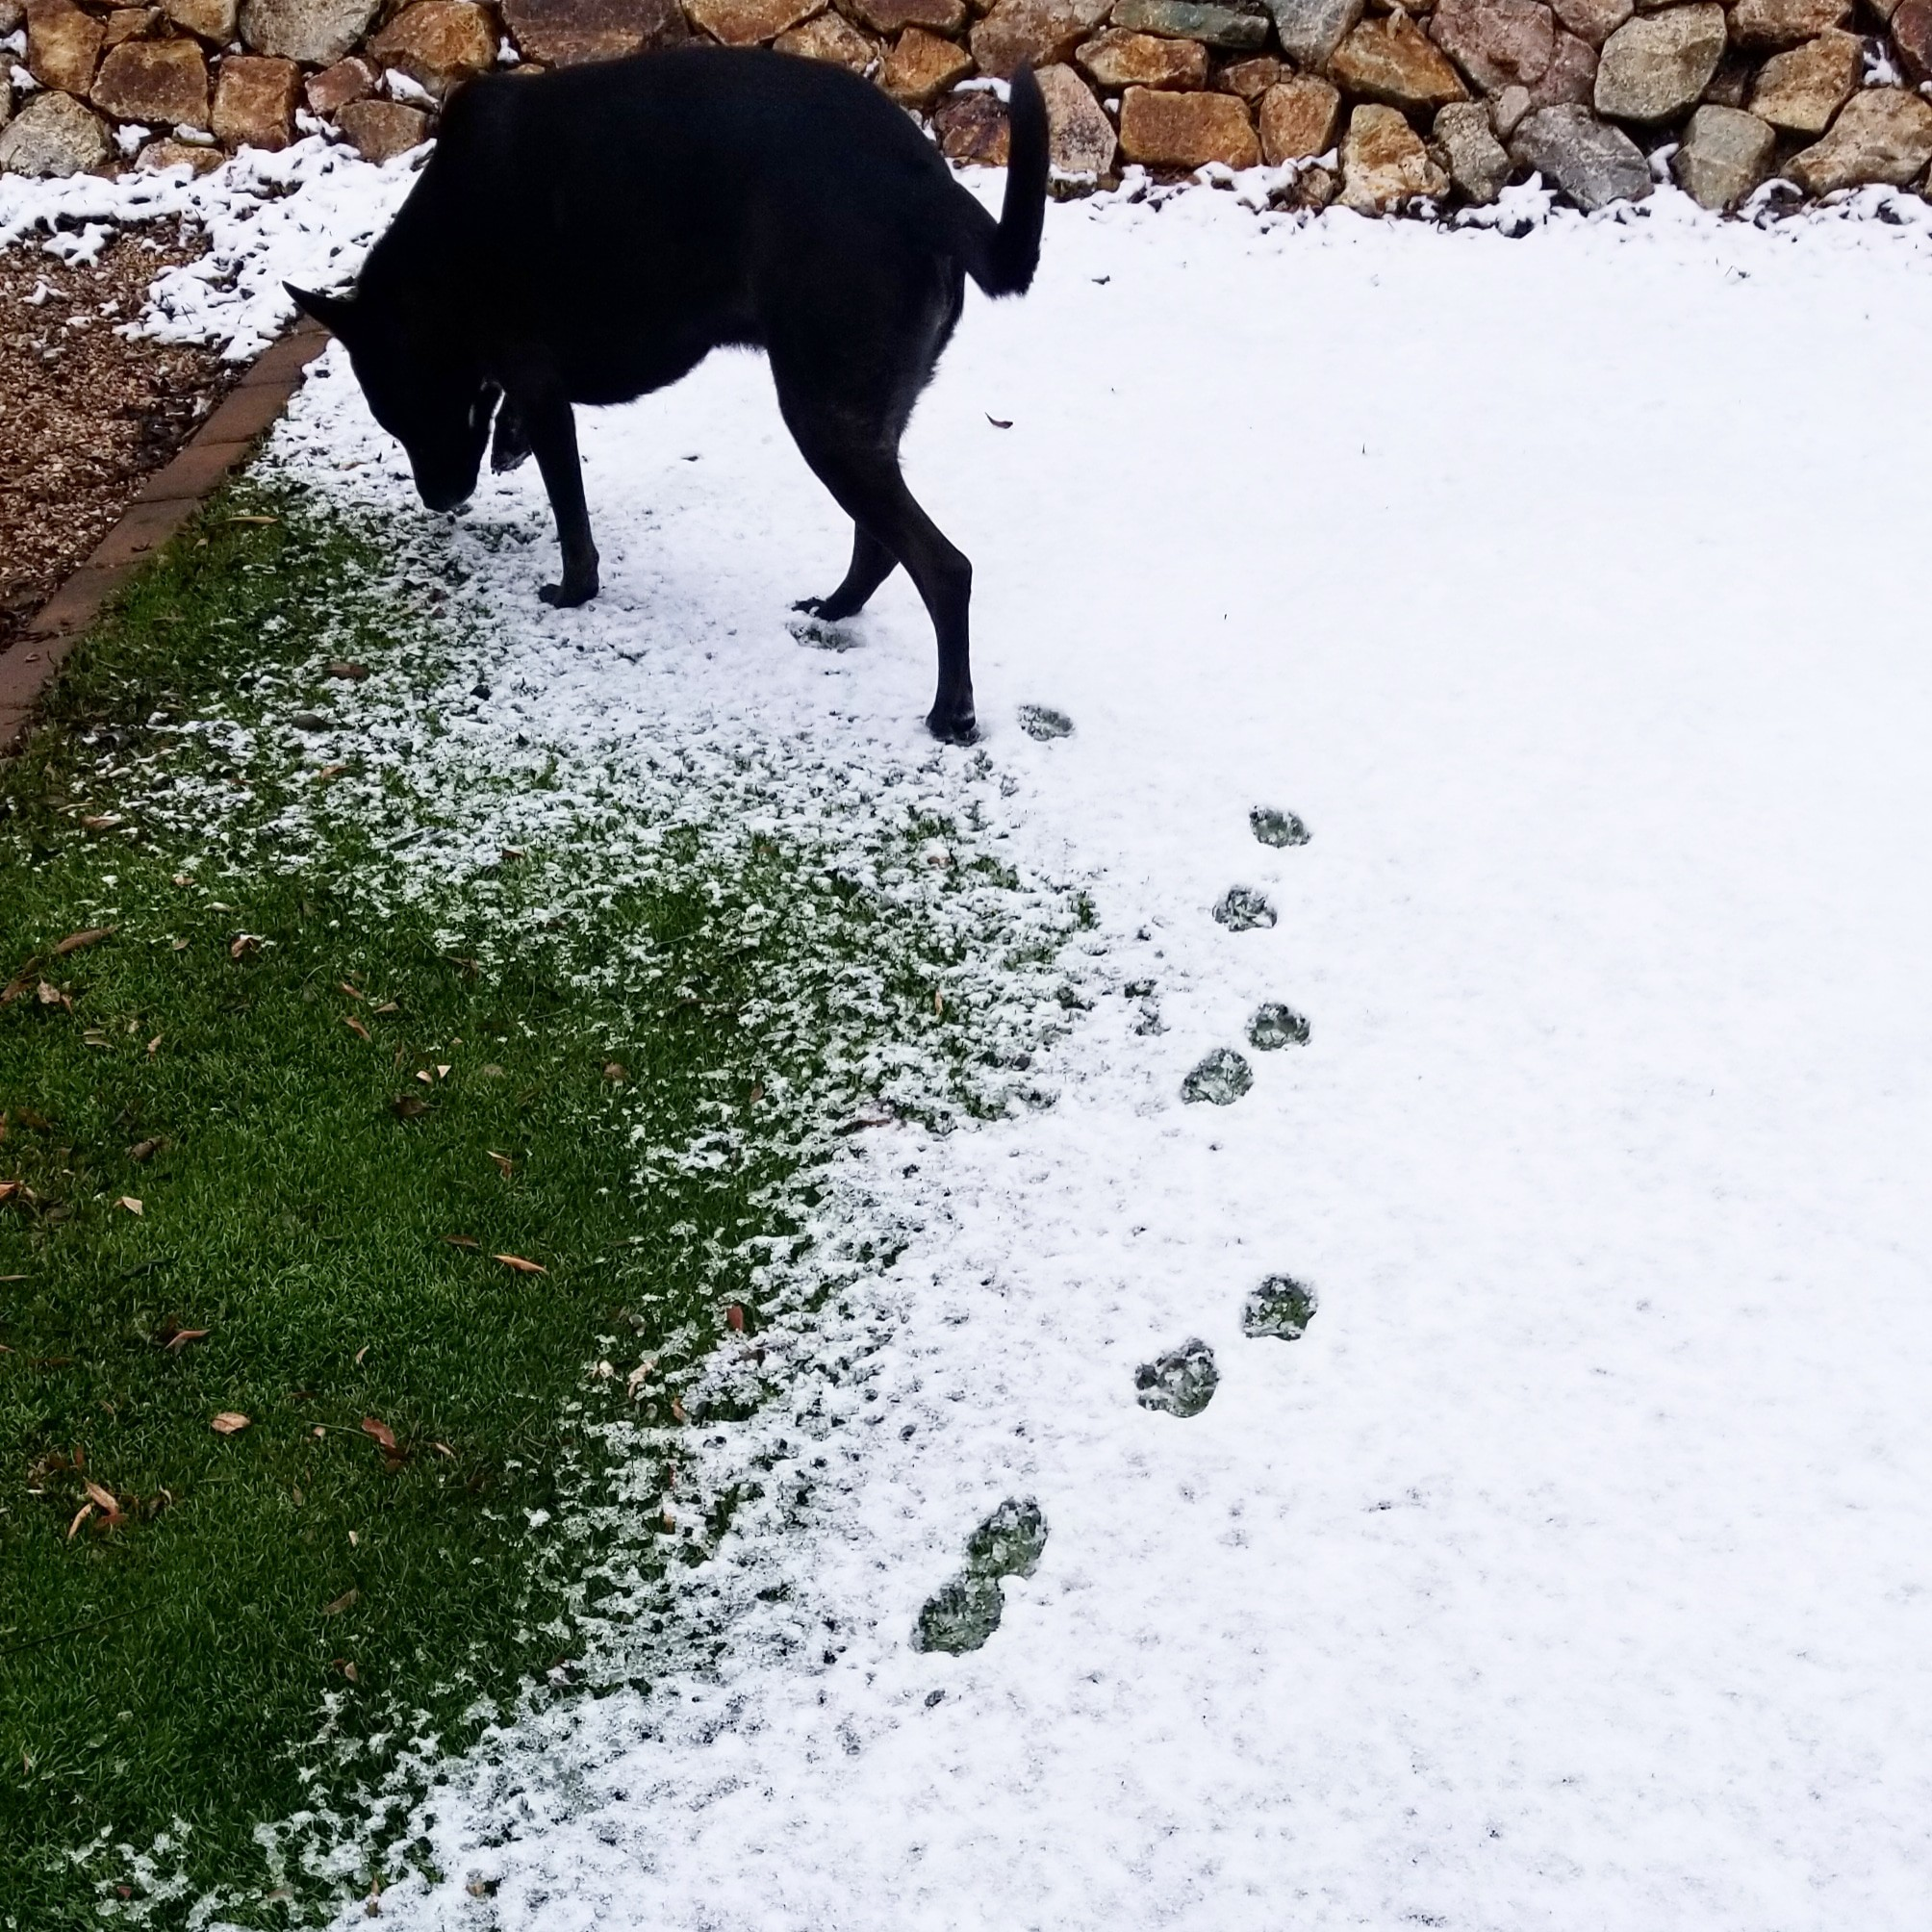 Matilda checking out the snow!